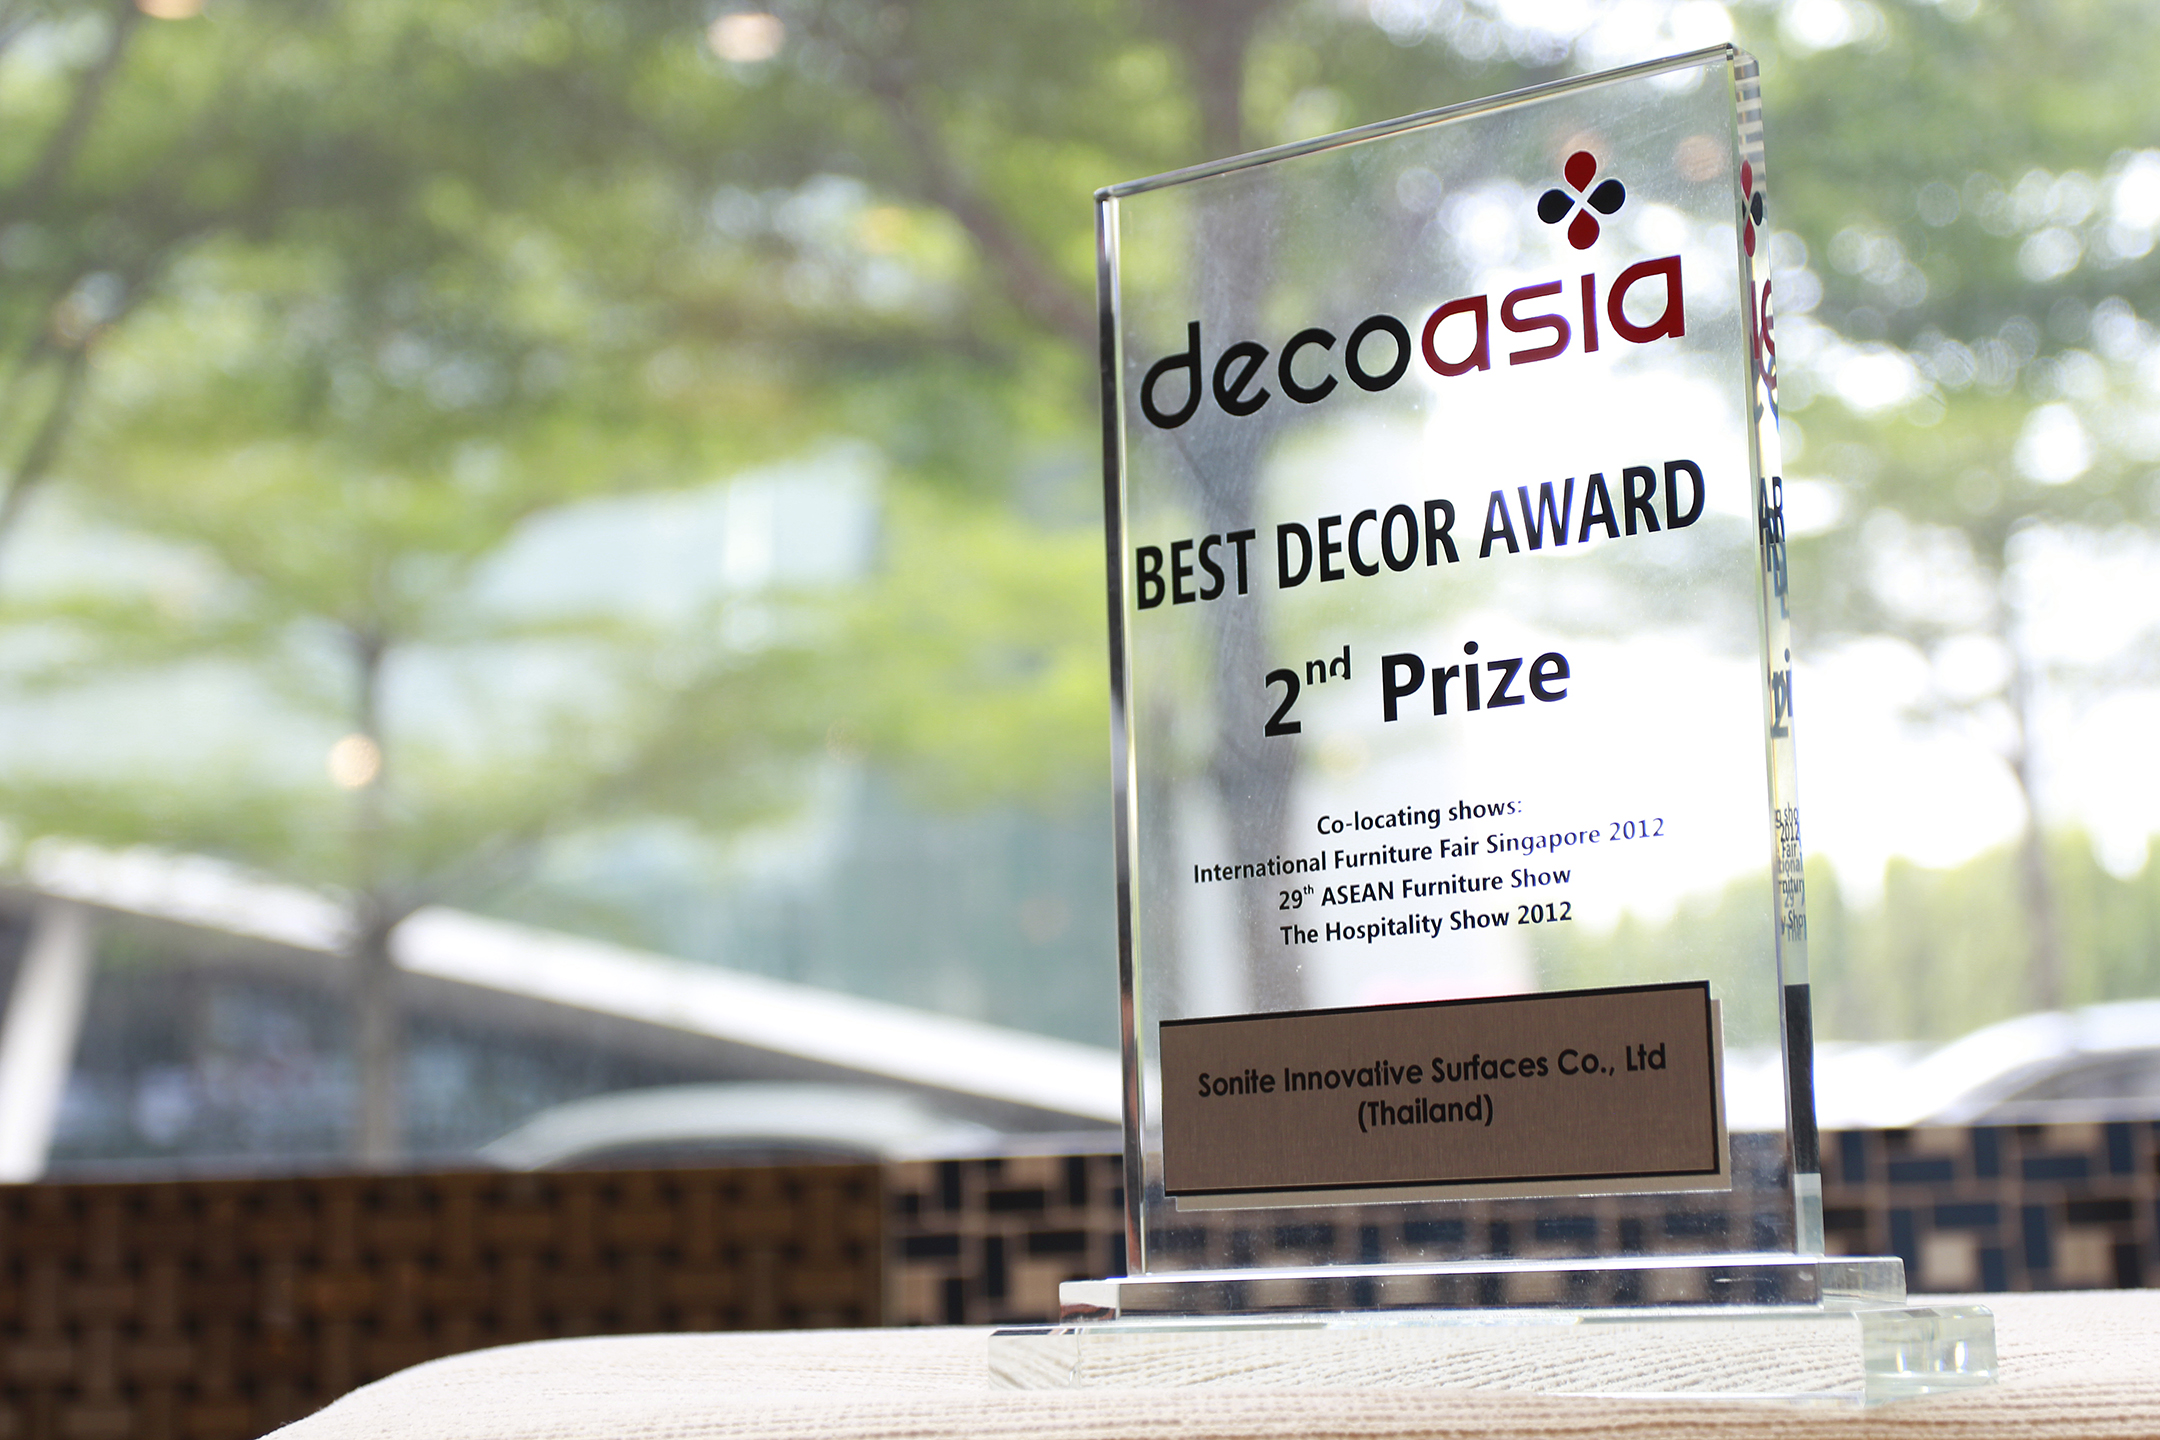 Decoasia Best Decor Award